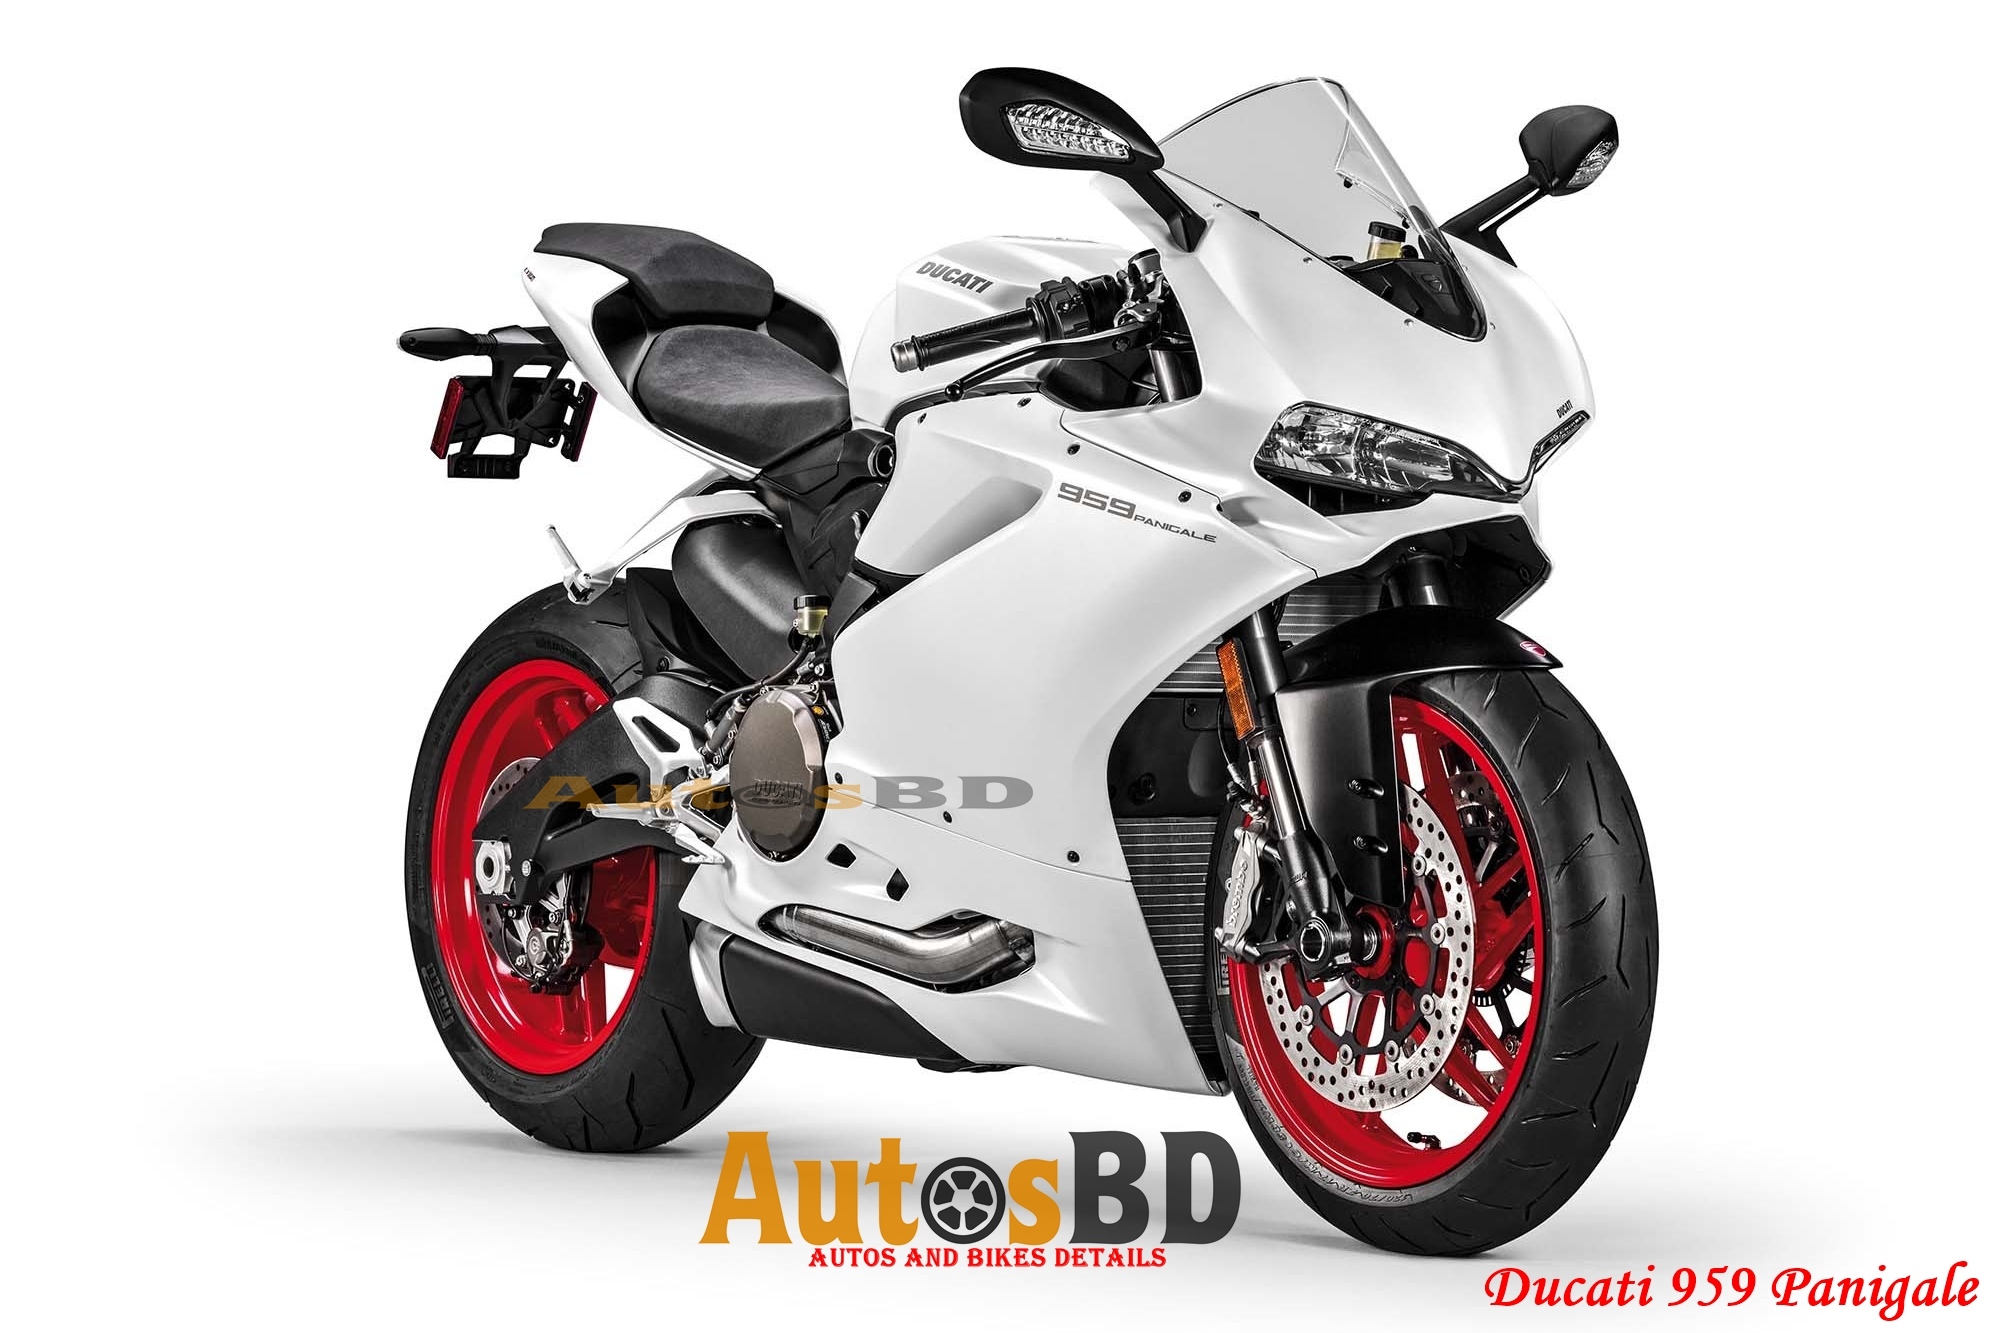 Ducati 959 Panigale Motorcycle Specification